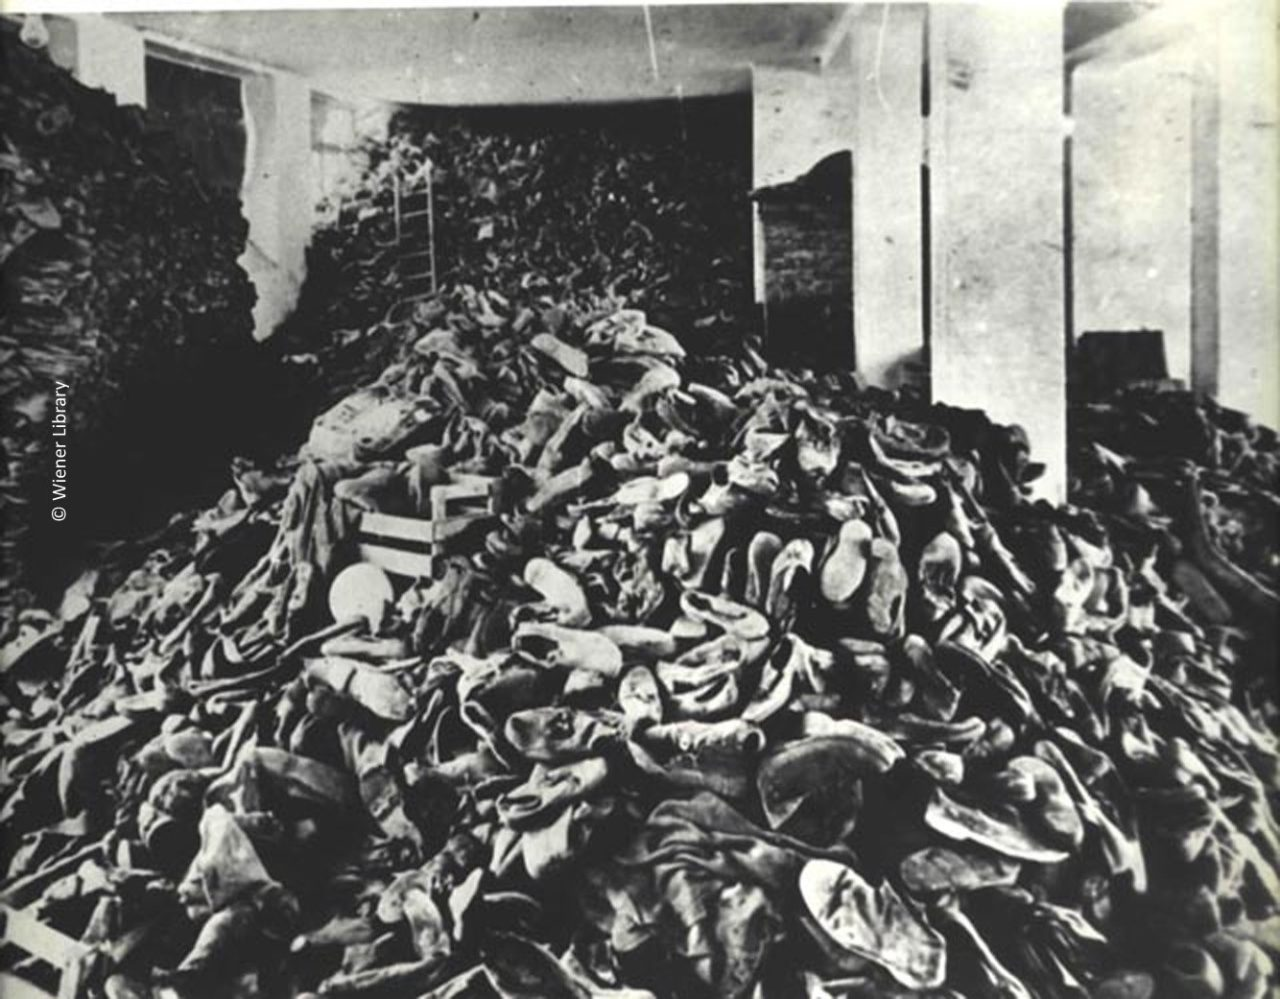 Shoes from inmates at Auschwitz-Birkenau